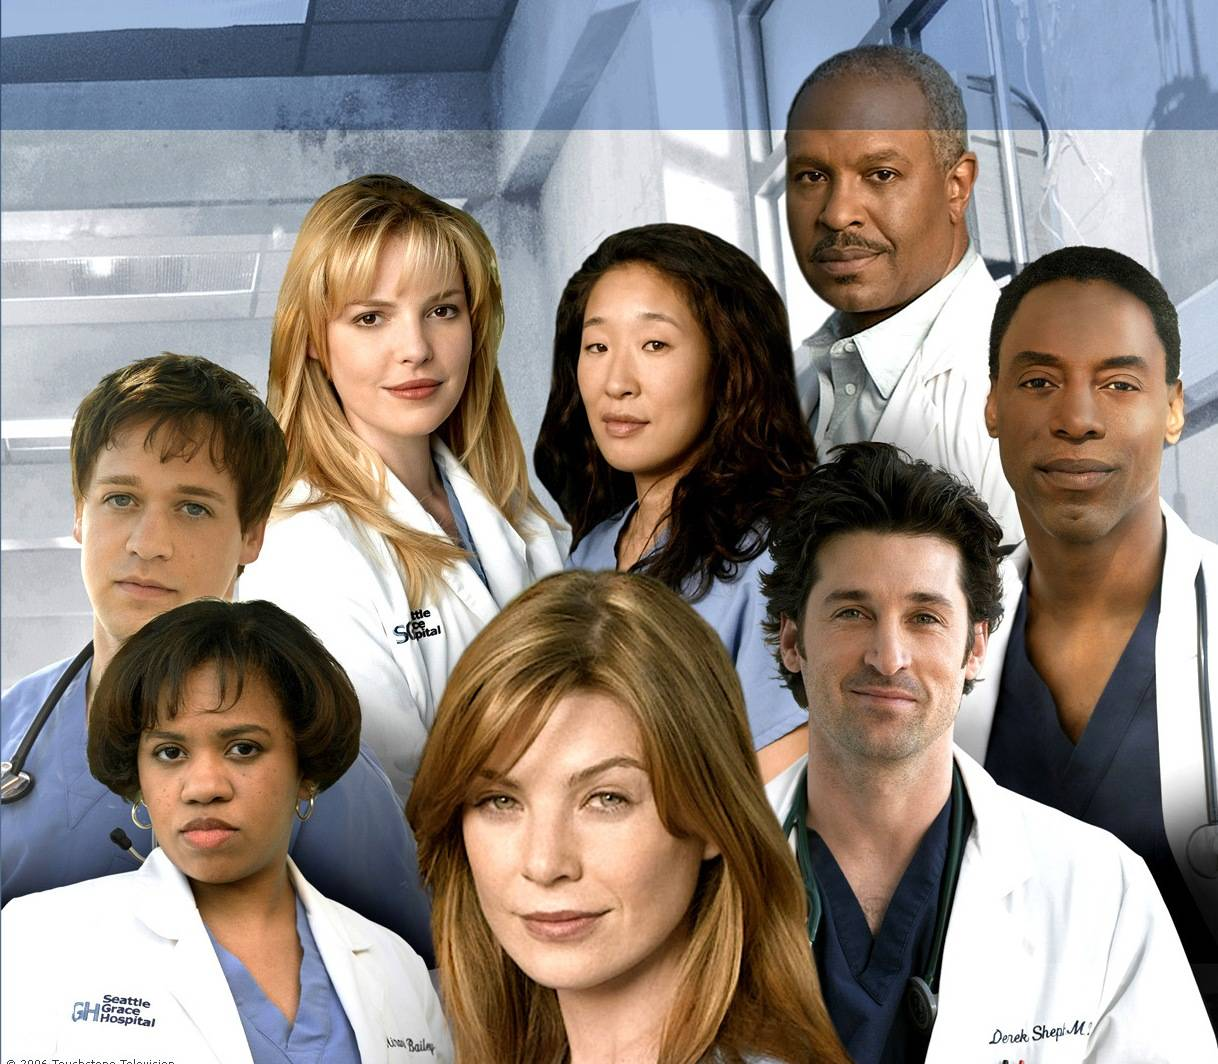 Grey's Cast - Grey's Anatomy Photo (253466) - Fanpop fanclubs